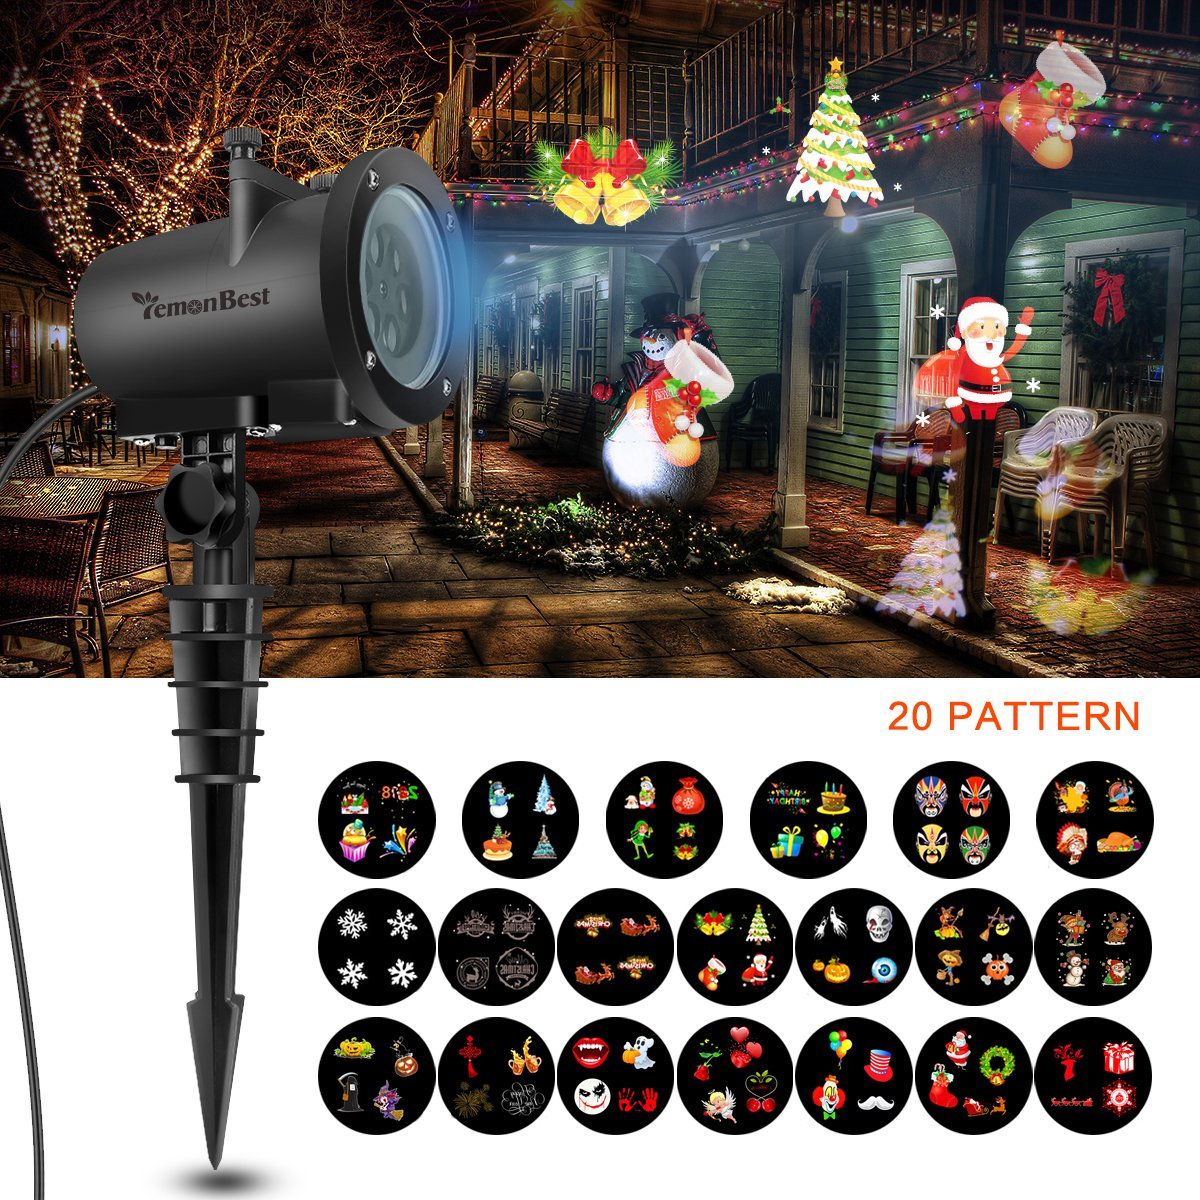 12W Led Holiday Projector Lights, AOZBZ 2018 Newest Version 20 Pattern Lens Switchable, Waterproof Landscape Garden LED Colorful Moving Snowflake with 32ft Power Cable for Halloween, Holiday Xmas